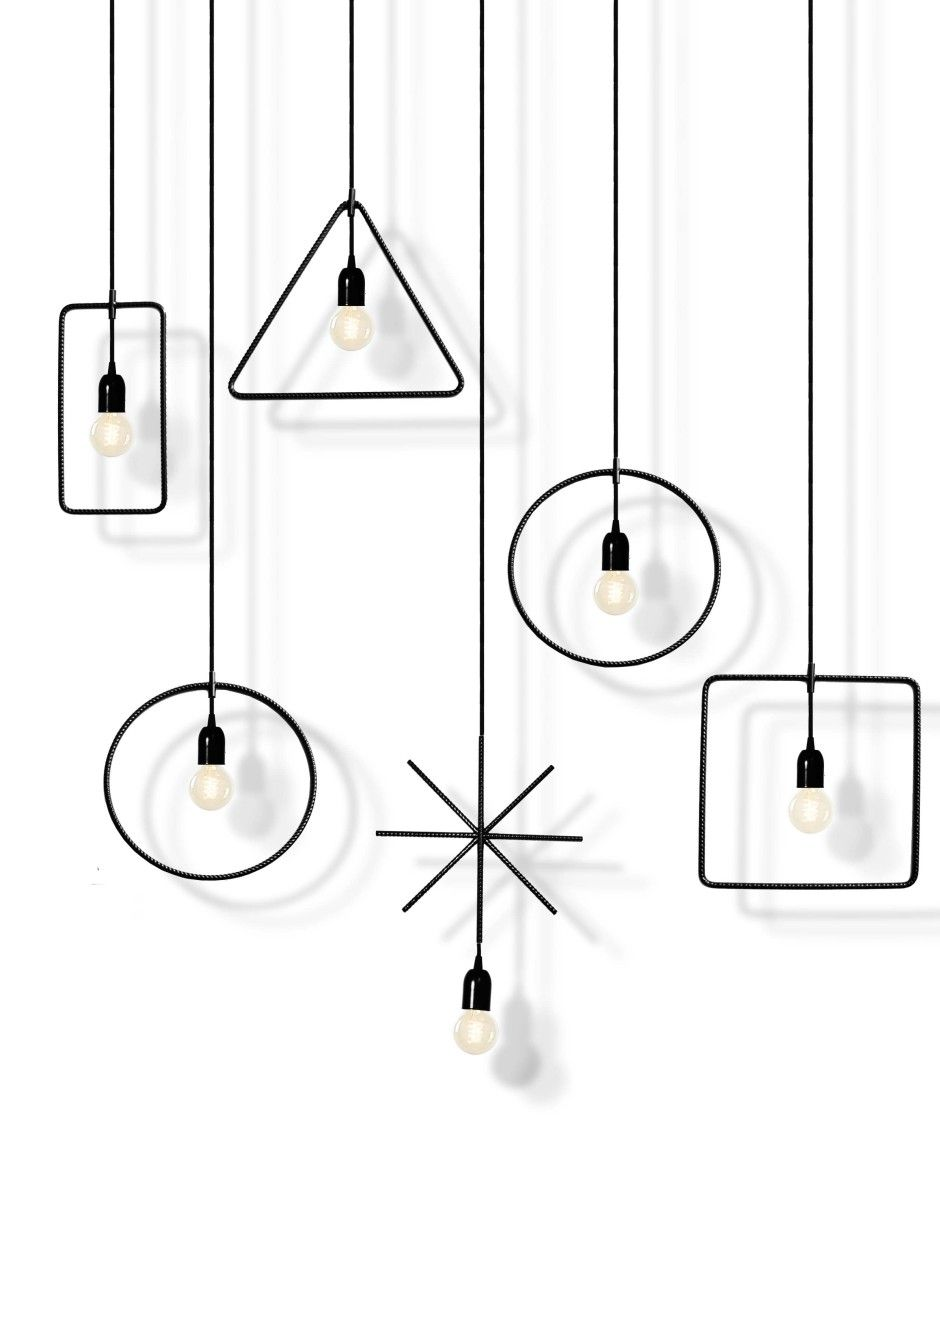 Geometry Made Easy Lights by MICROmacro made in Italy on CrowdyHouse